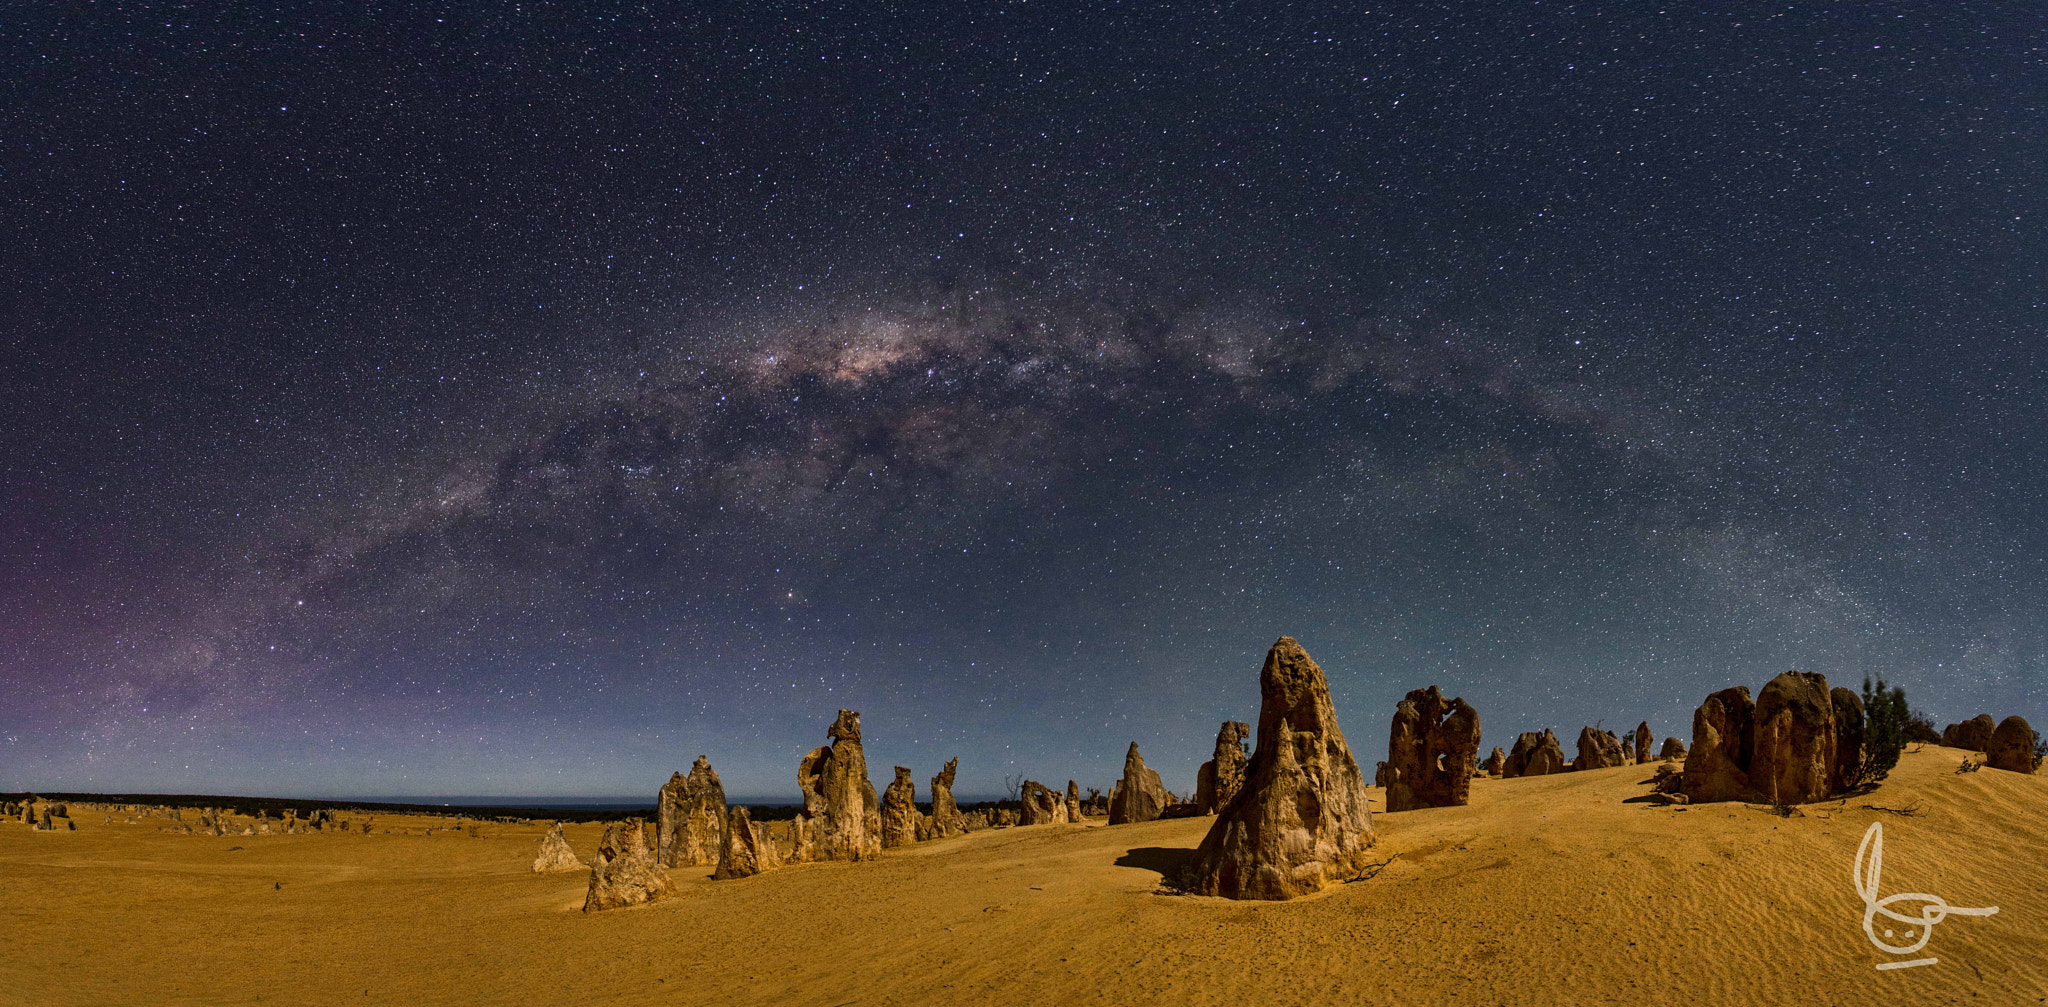 Photograph Milky Way at the Pinnacles by Michael Goh on 500px